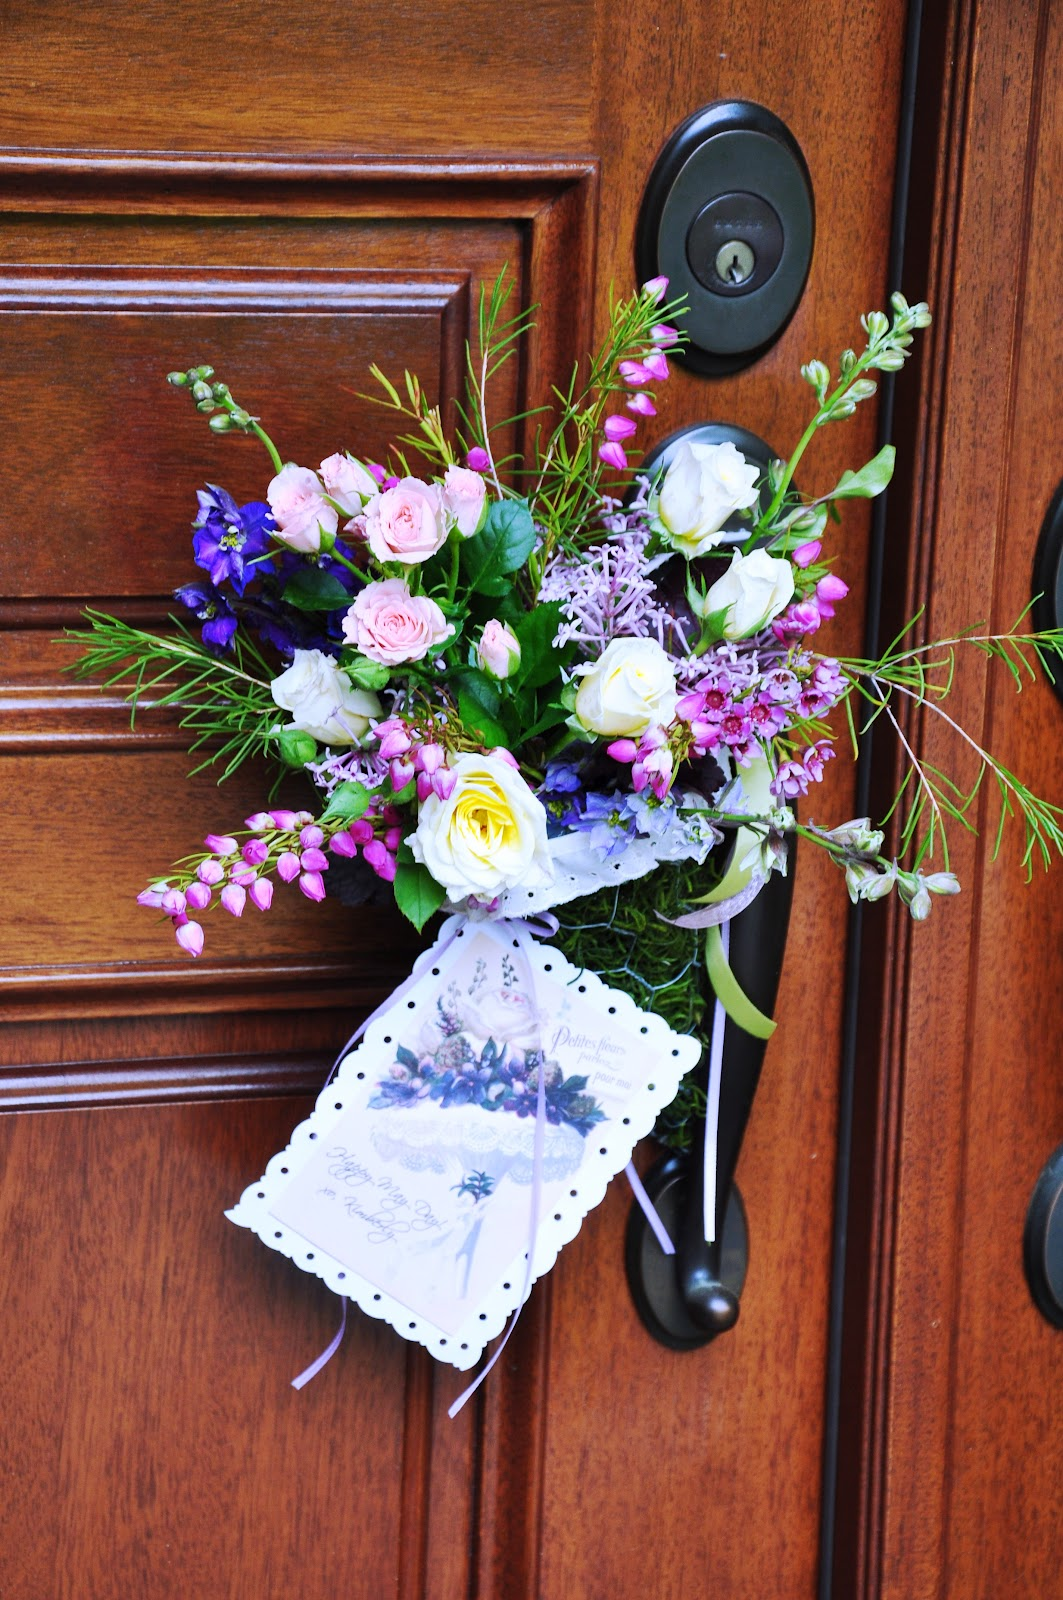 Image result for image of a may basket